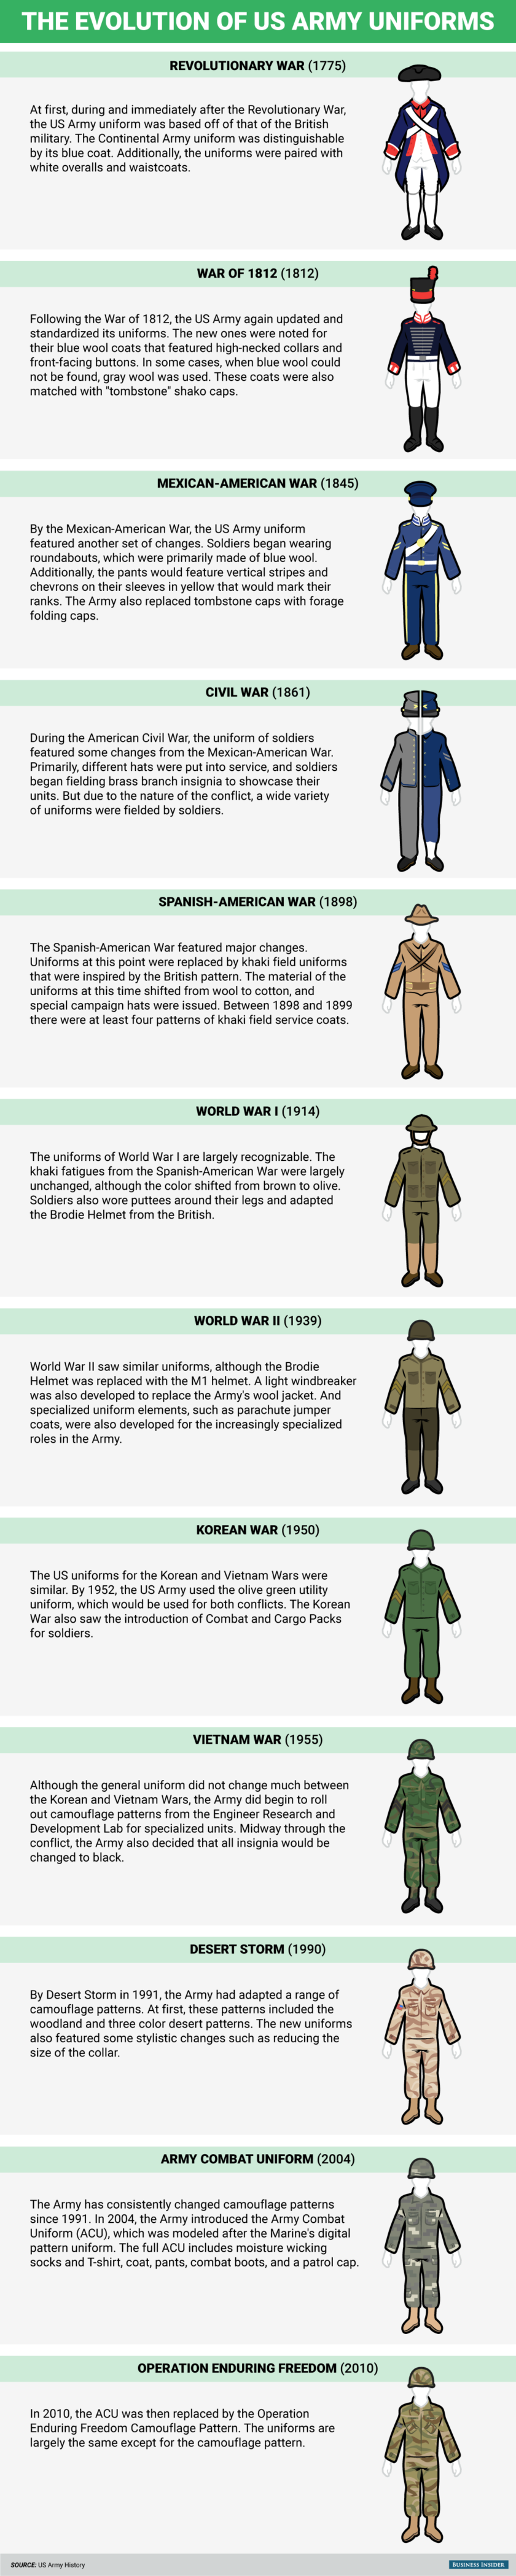 Here's How Army Uniforms Have Changed In The 242 Years Since